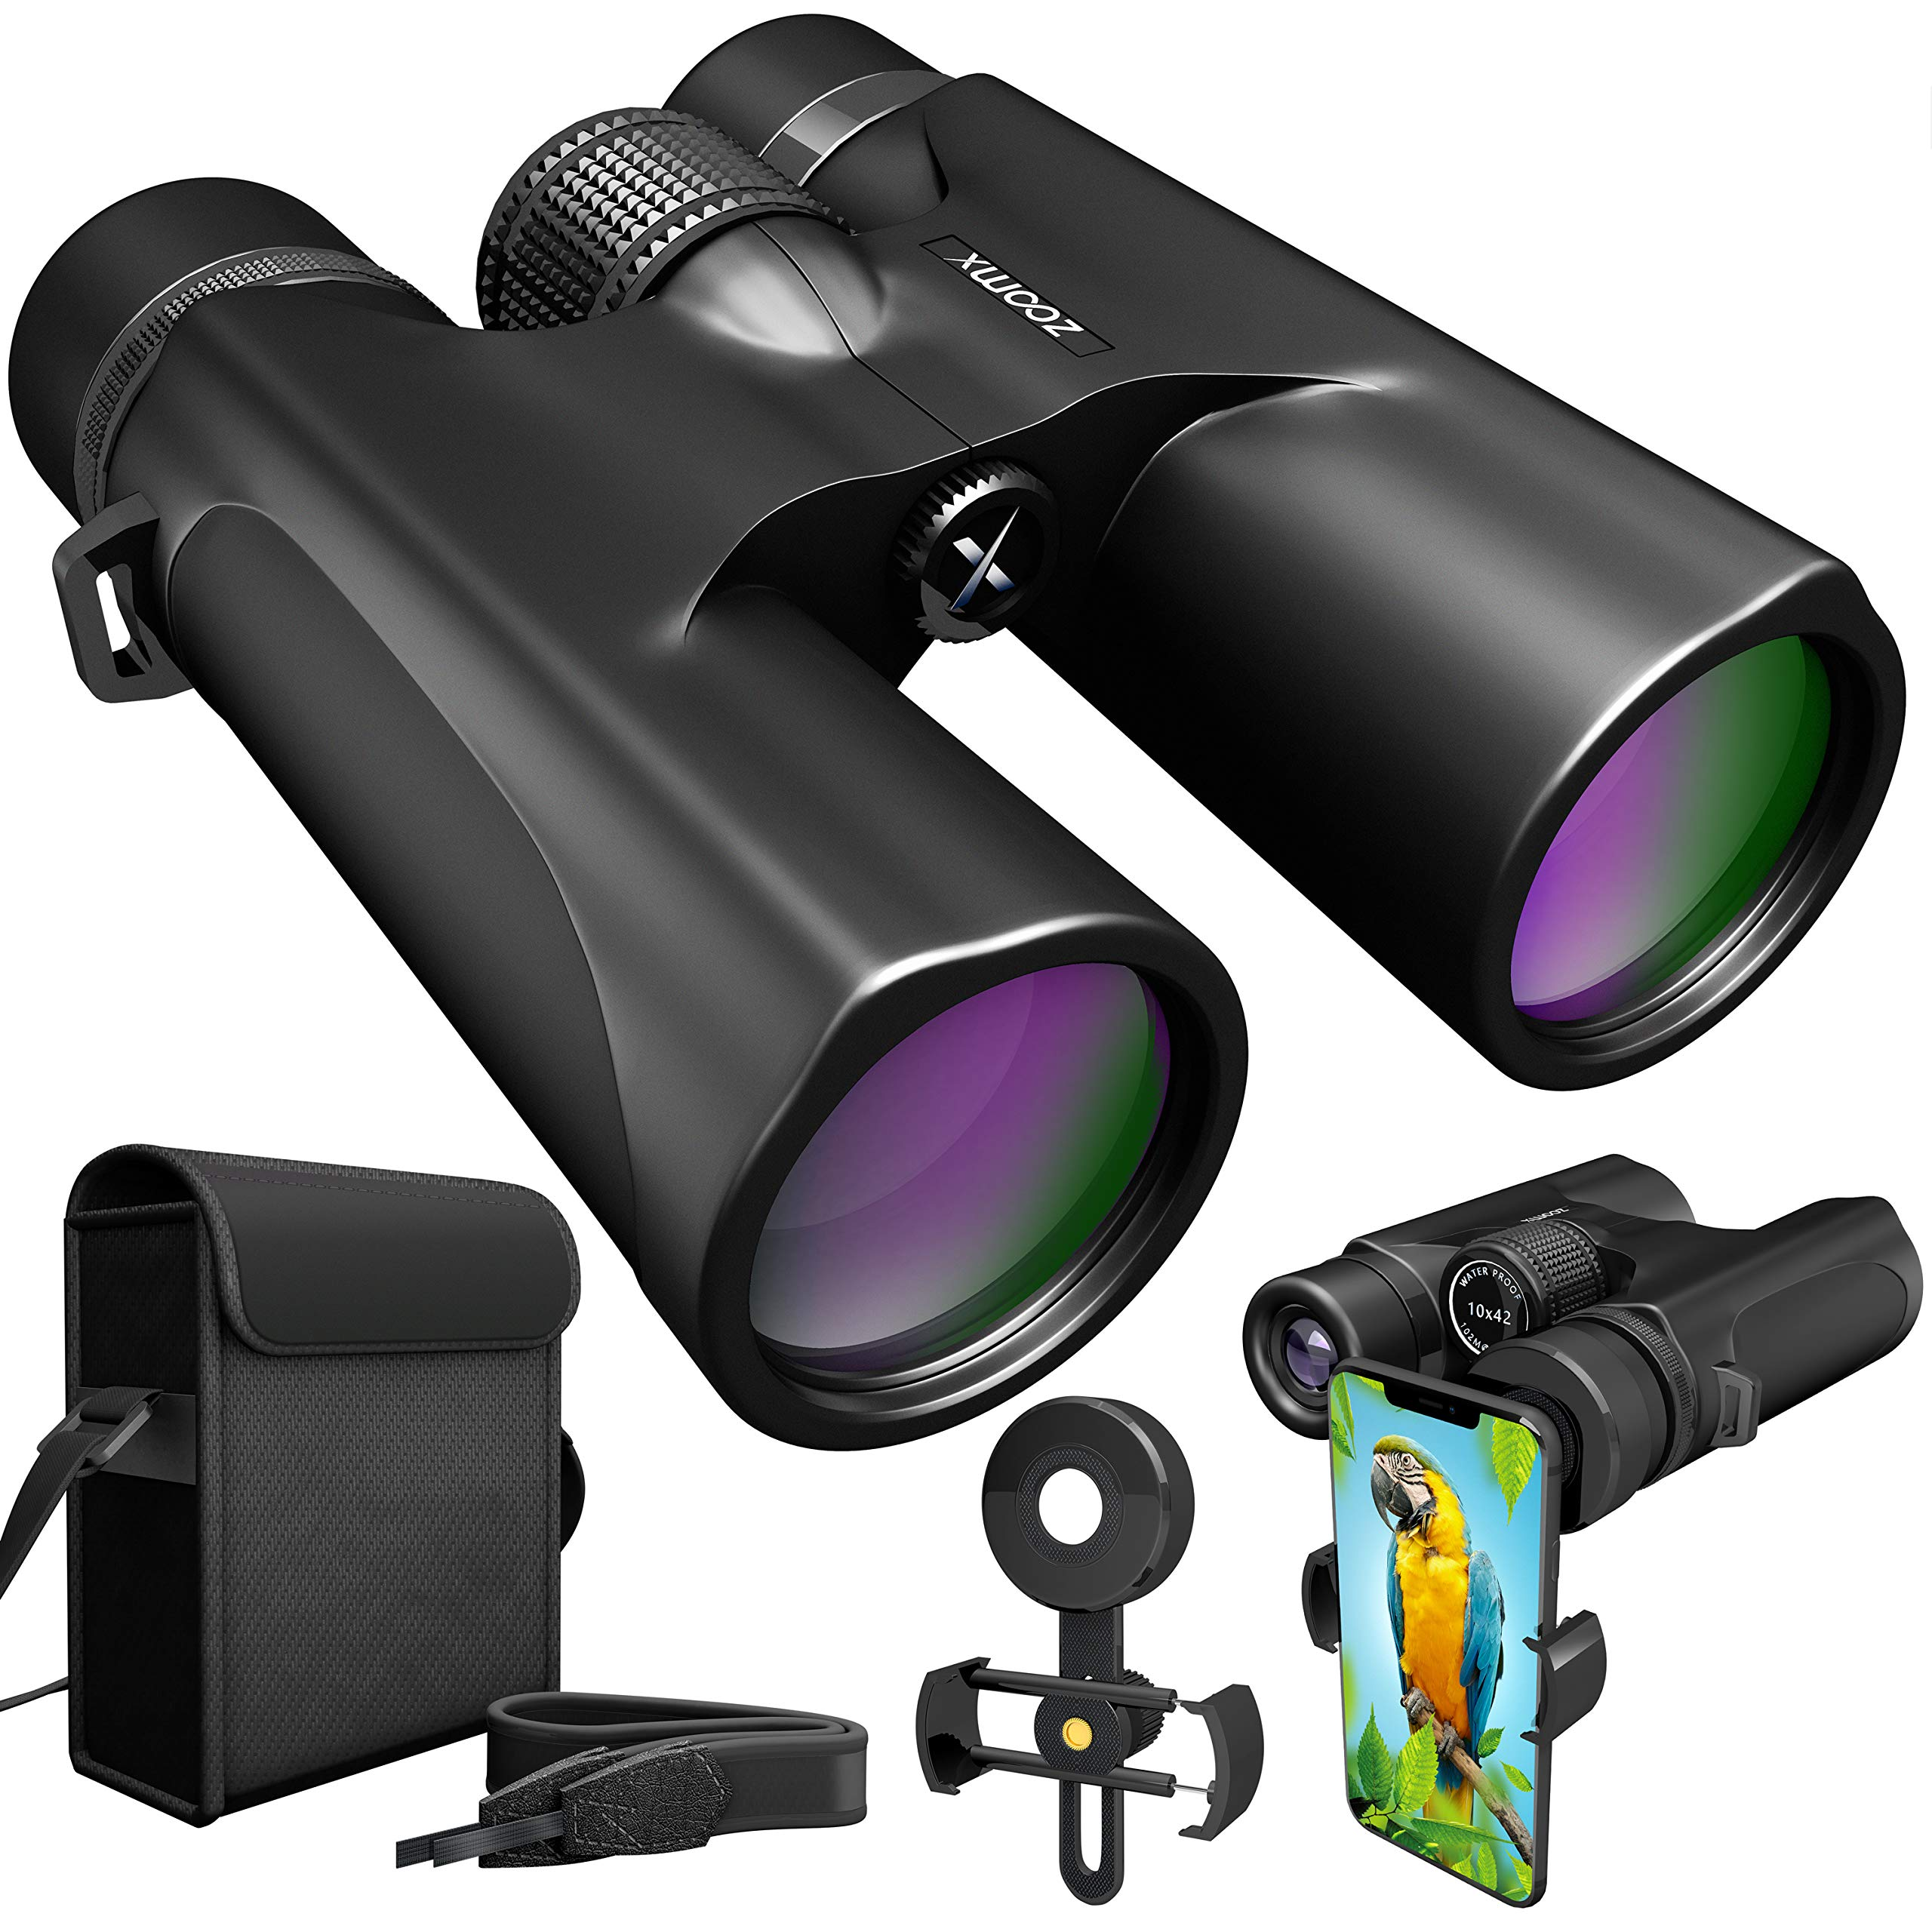 Waterproof 10x42 Binoculars For Adults. Lightweight Compact Binoculars 10x42 Prism BAK4. HD Binocular For Bird Watching Hunting Traveling And Sightseeing With Smartphone Adapter by ZoomX